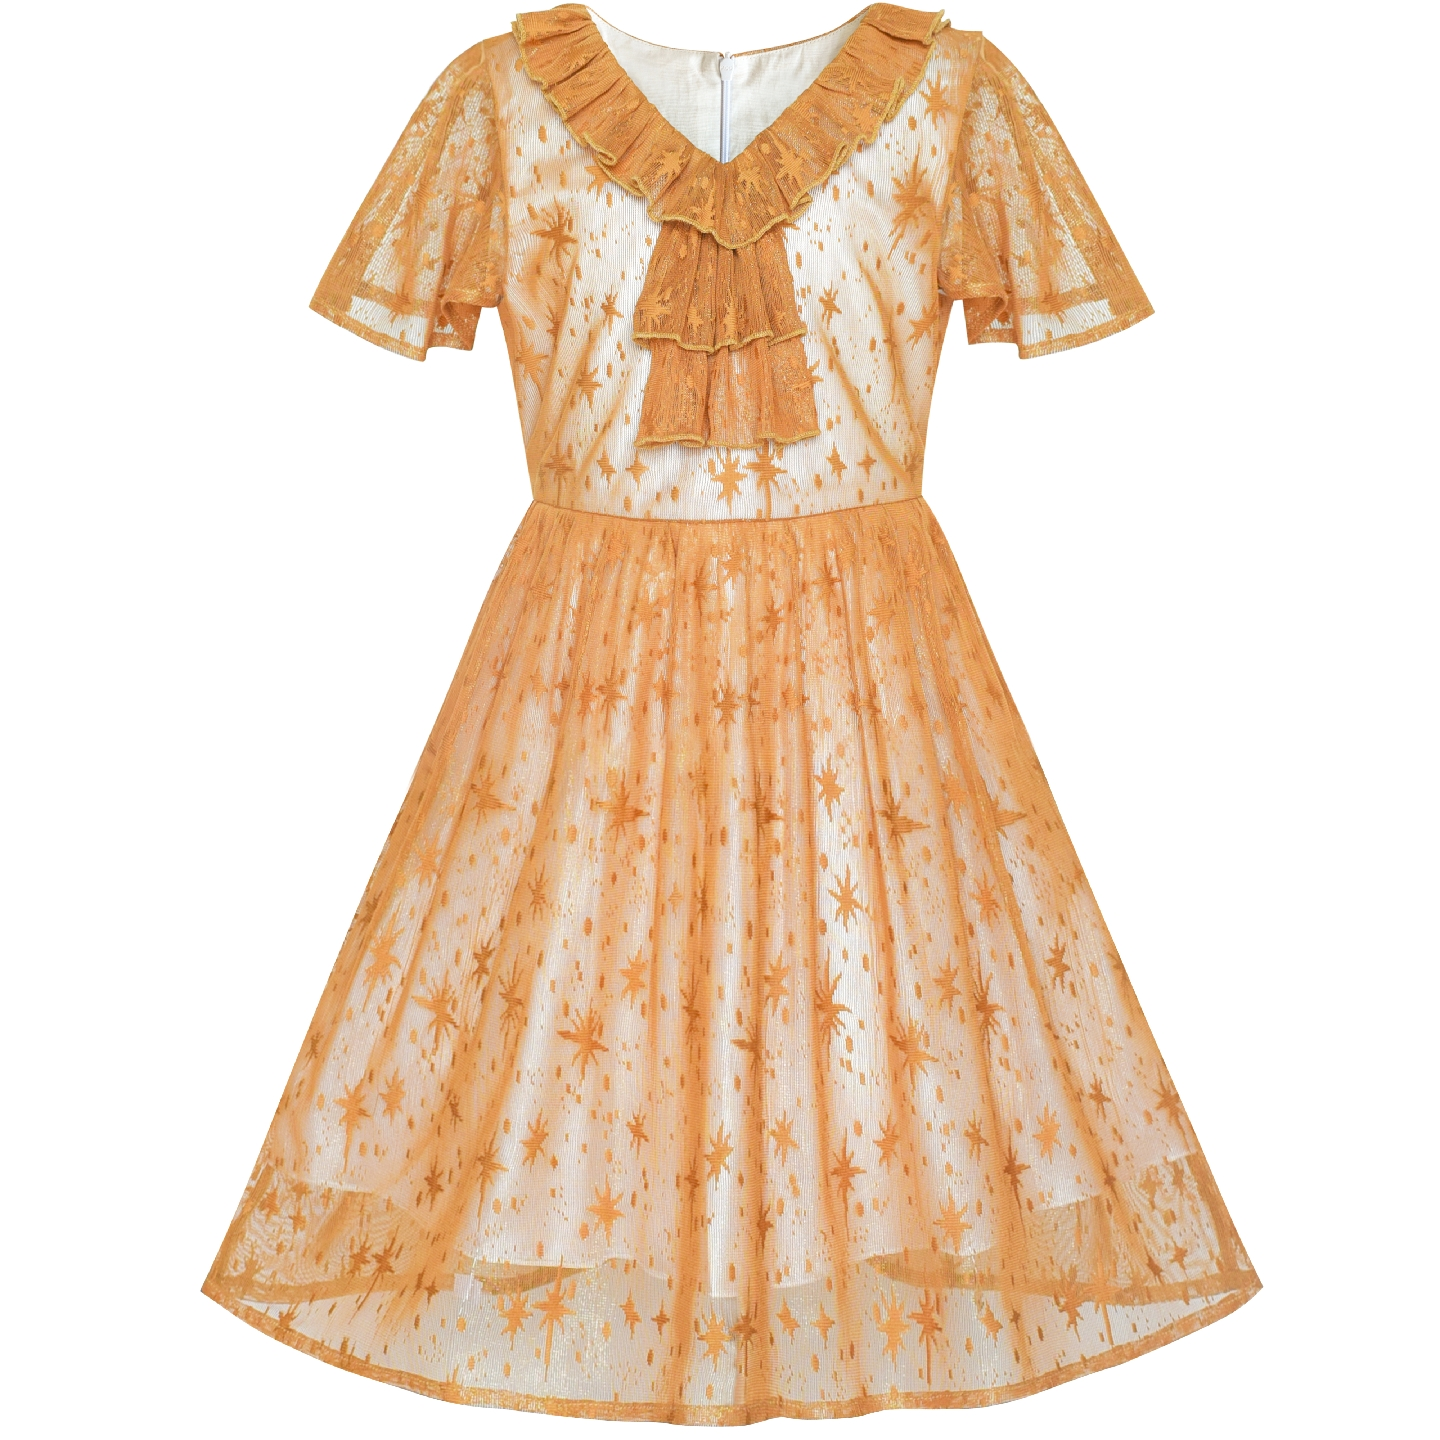 все цены на Flower Girl Dress Caramel Star Lace Short Sleeve Pleated Collar Dress 2019 Summer Princess Wedding Party Dresses Kids Clothes